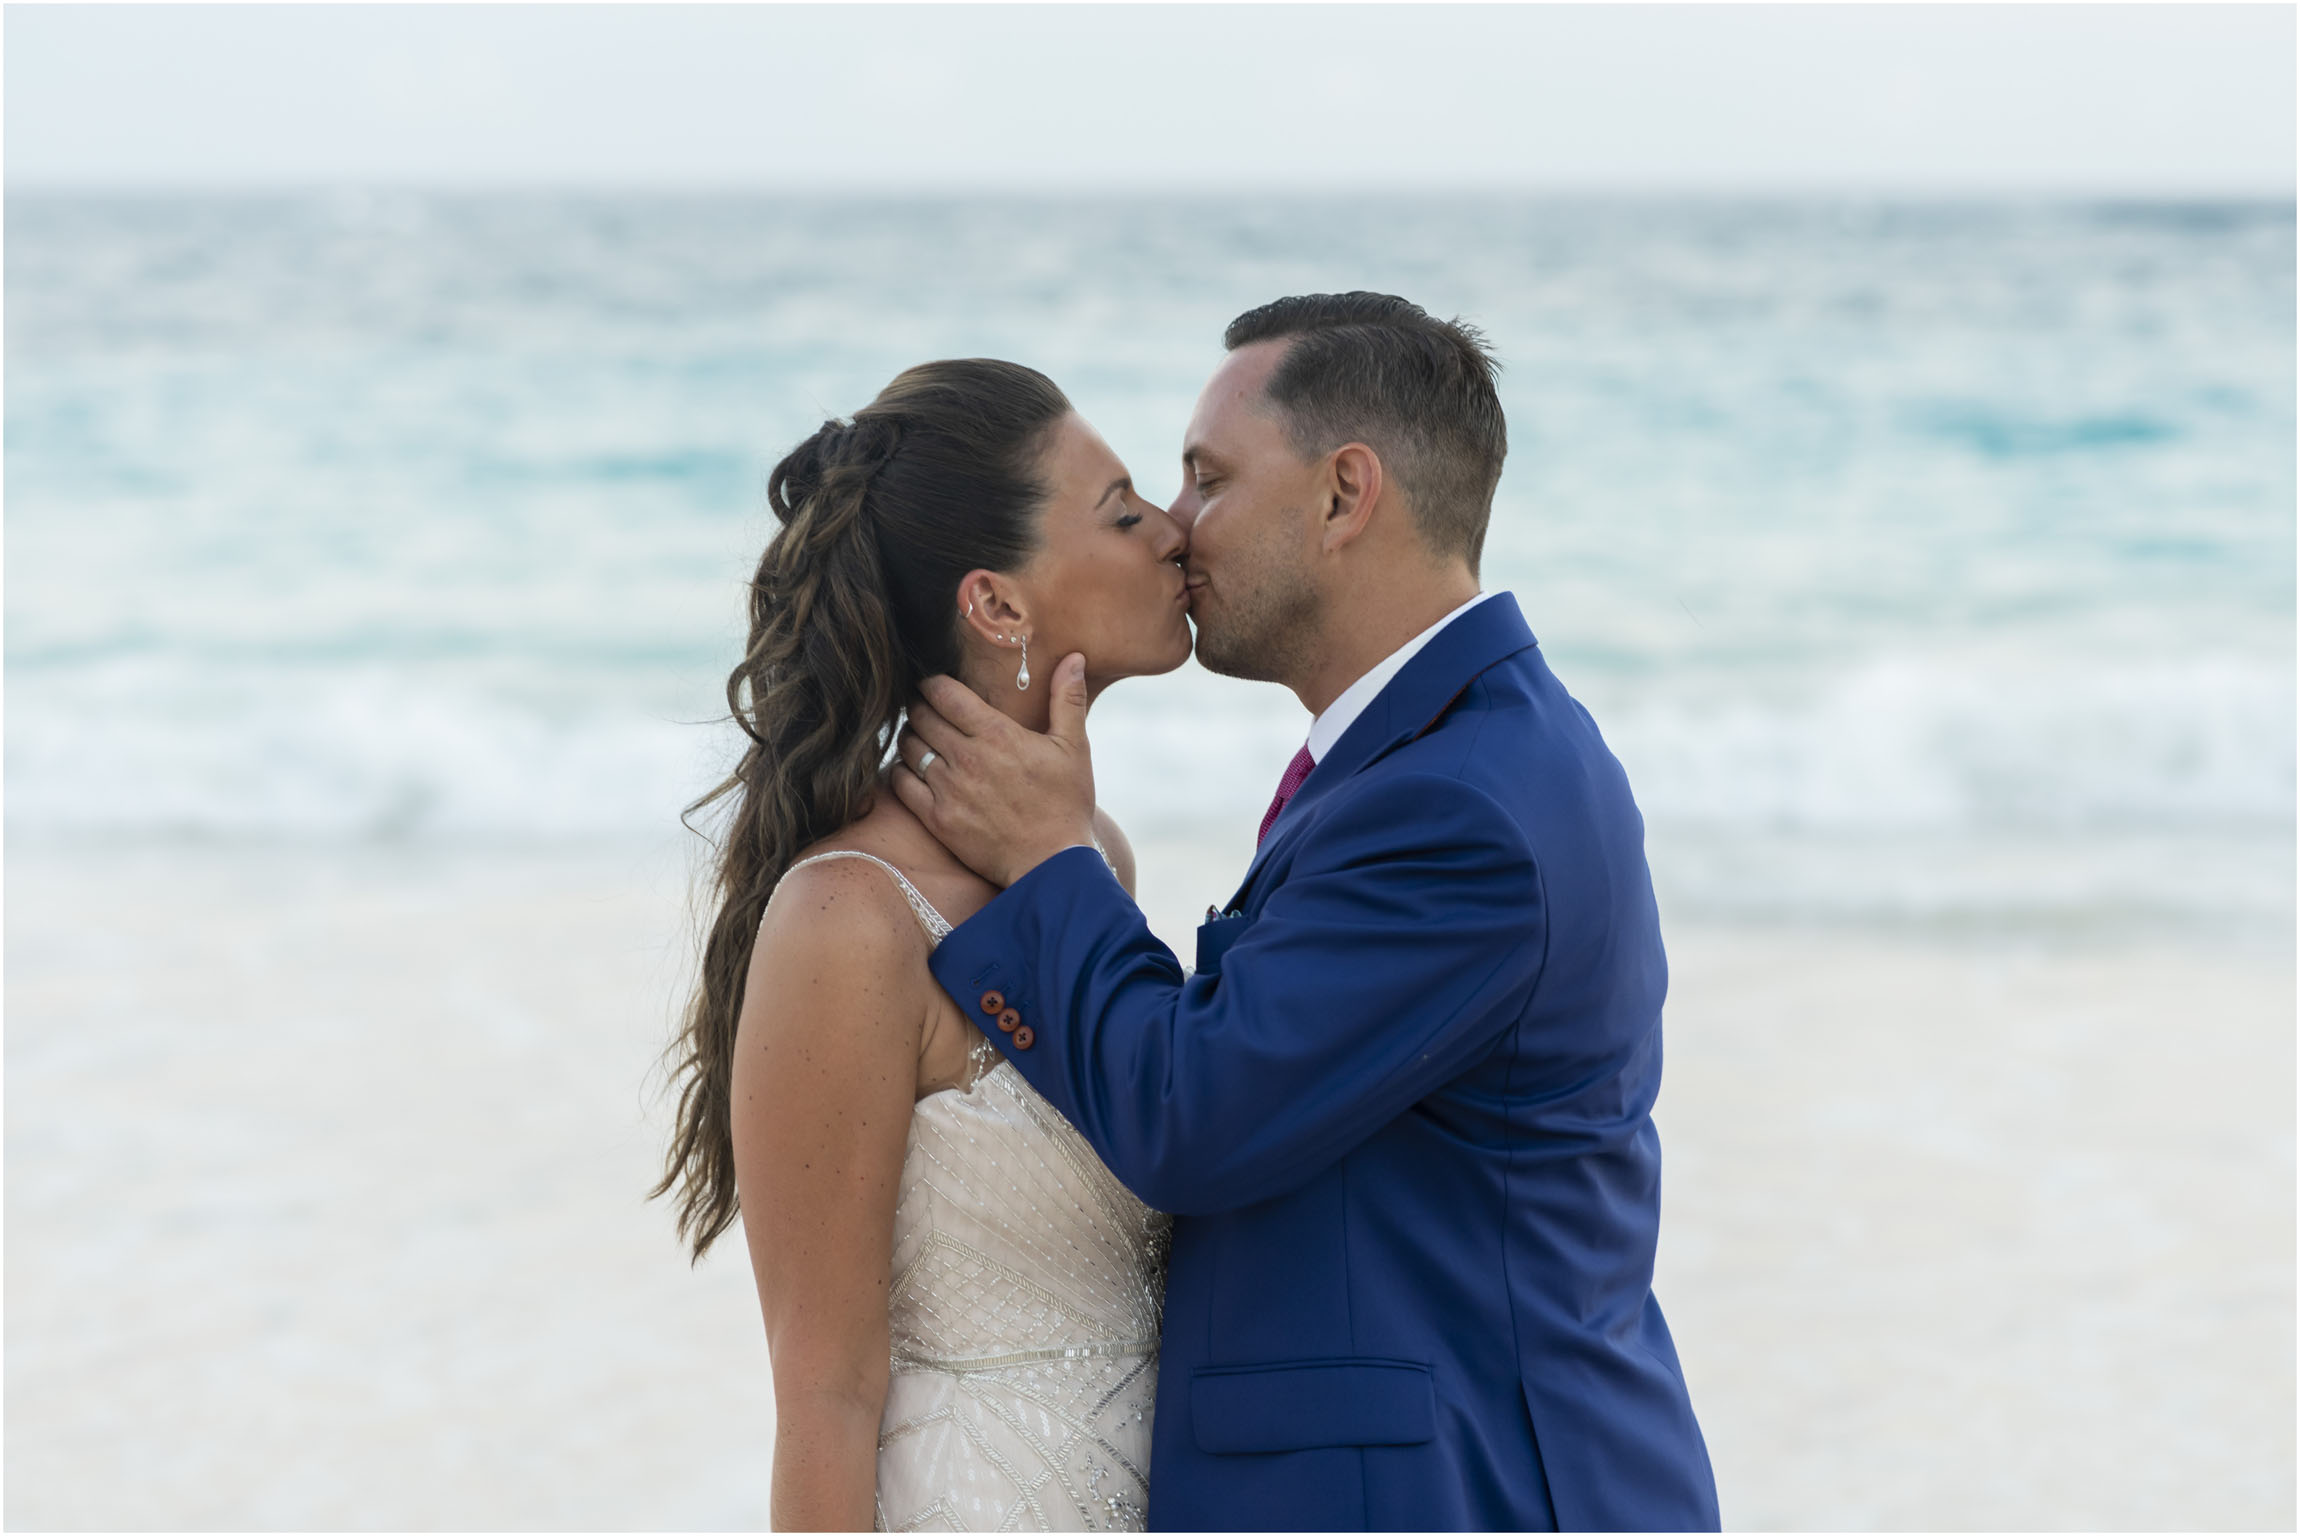 ©FianderFoto_Catherine_Kenny_Coral Beach Wedding_193.jpg